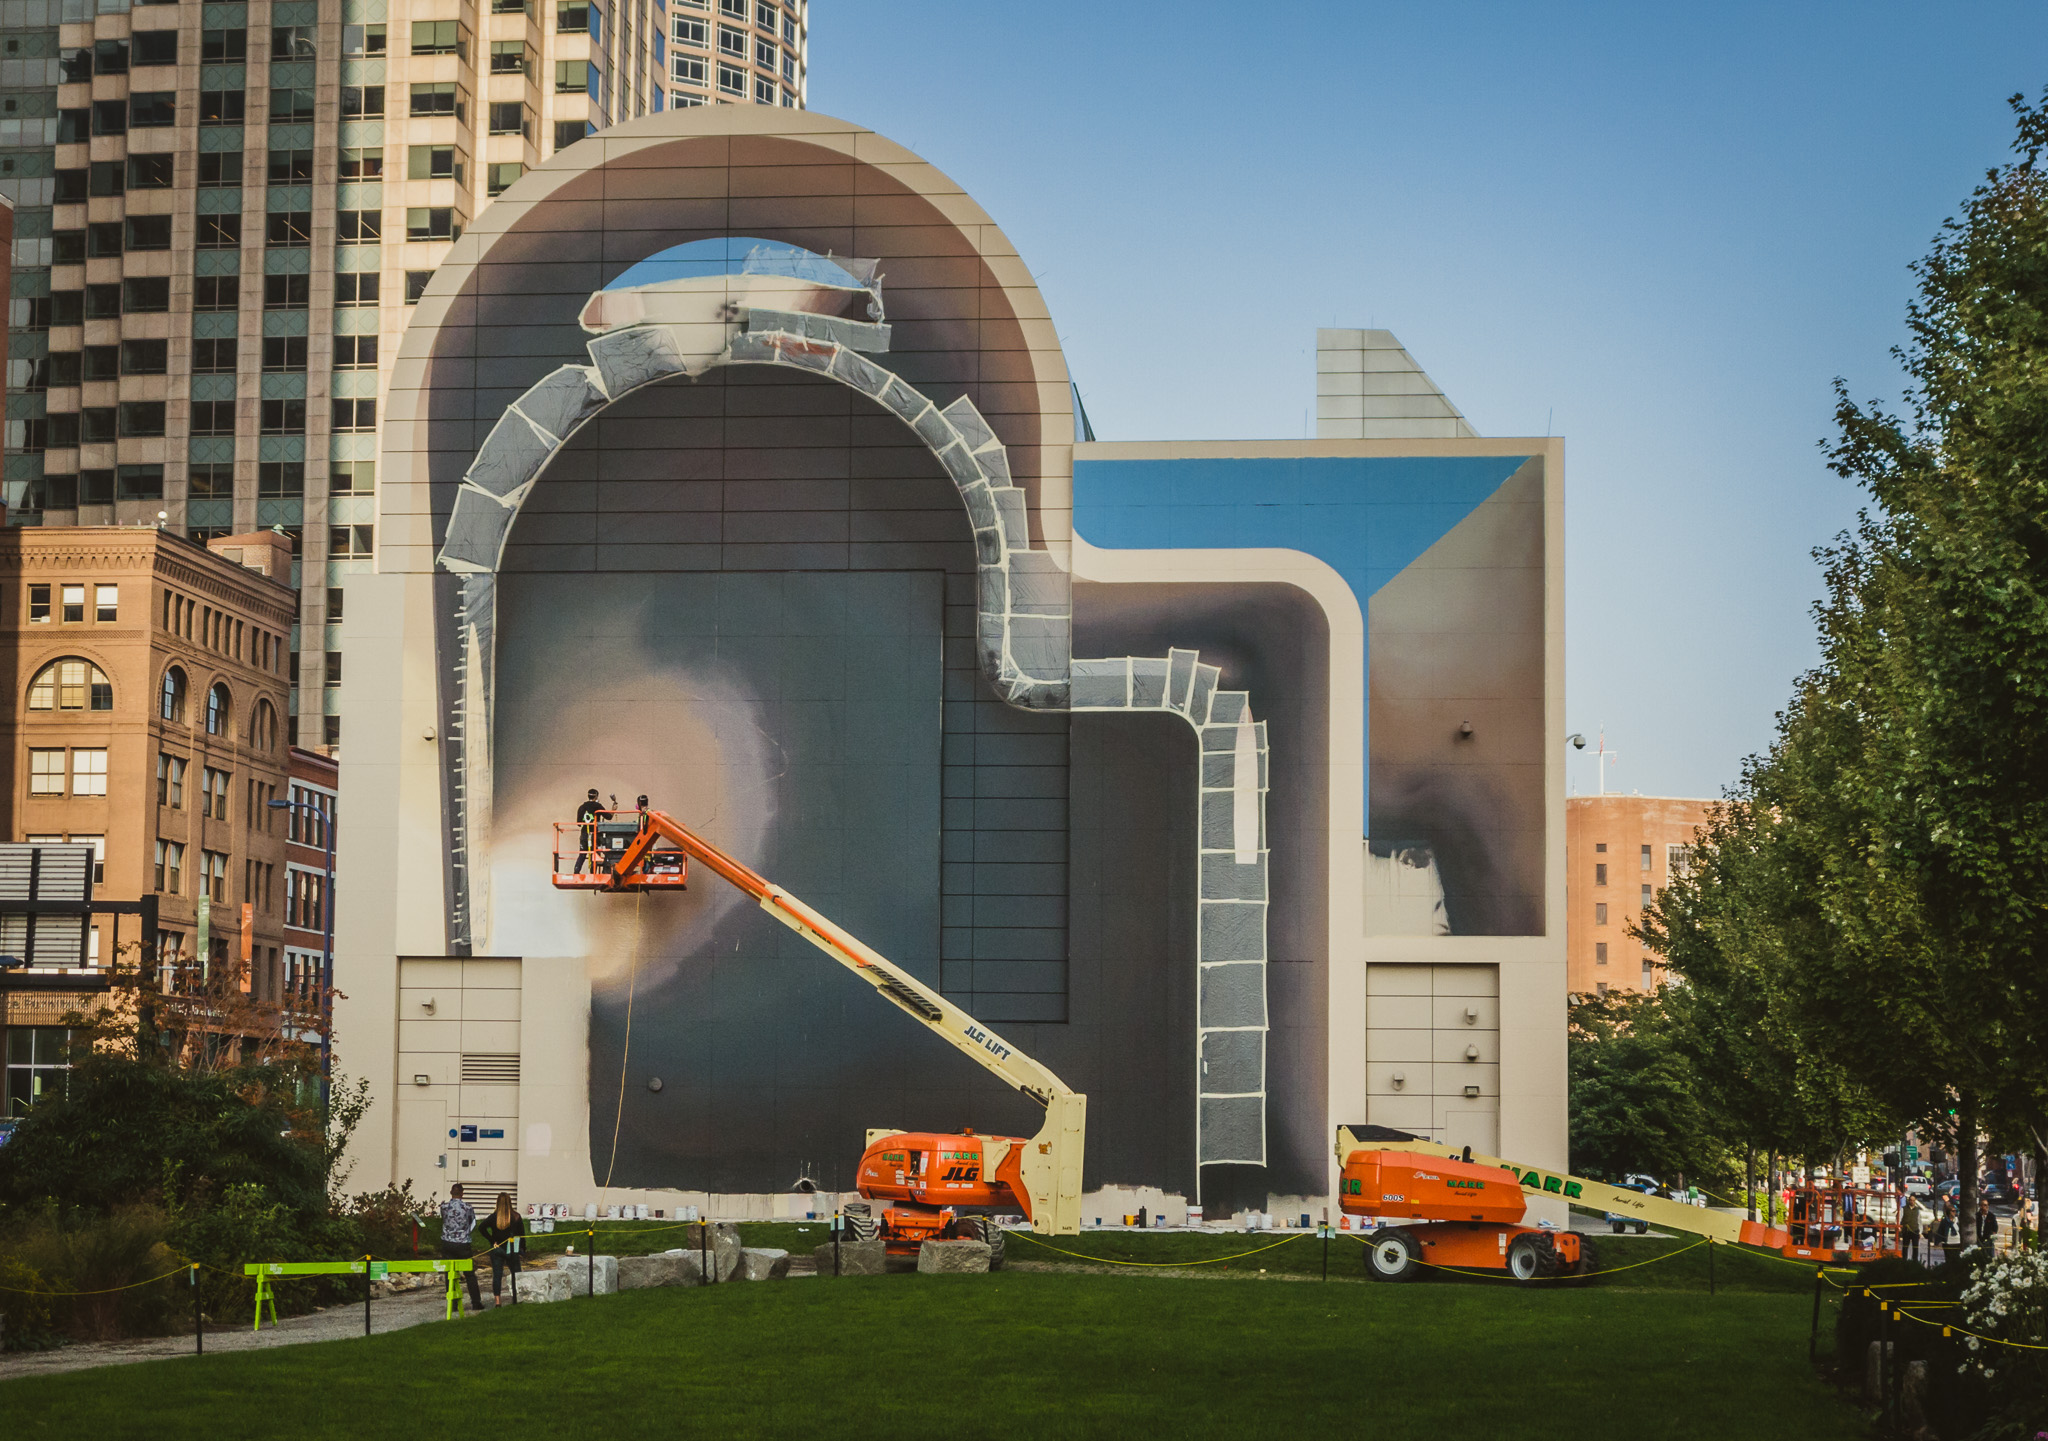 New mural coming to greenway spaces of hope by artist for Dewey square mural